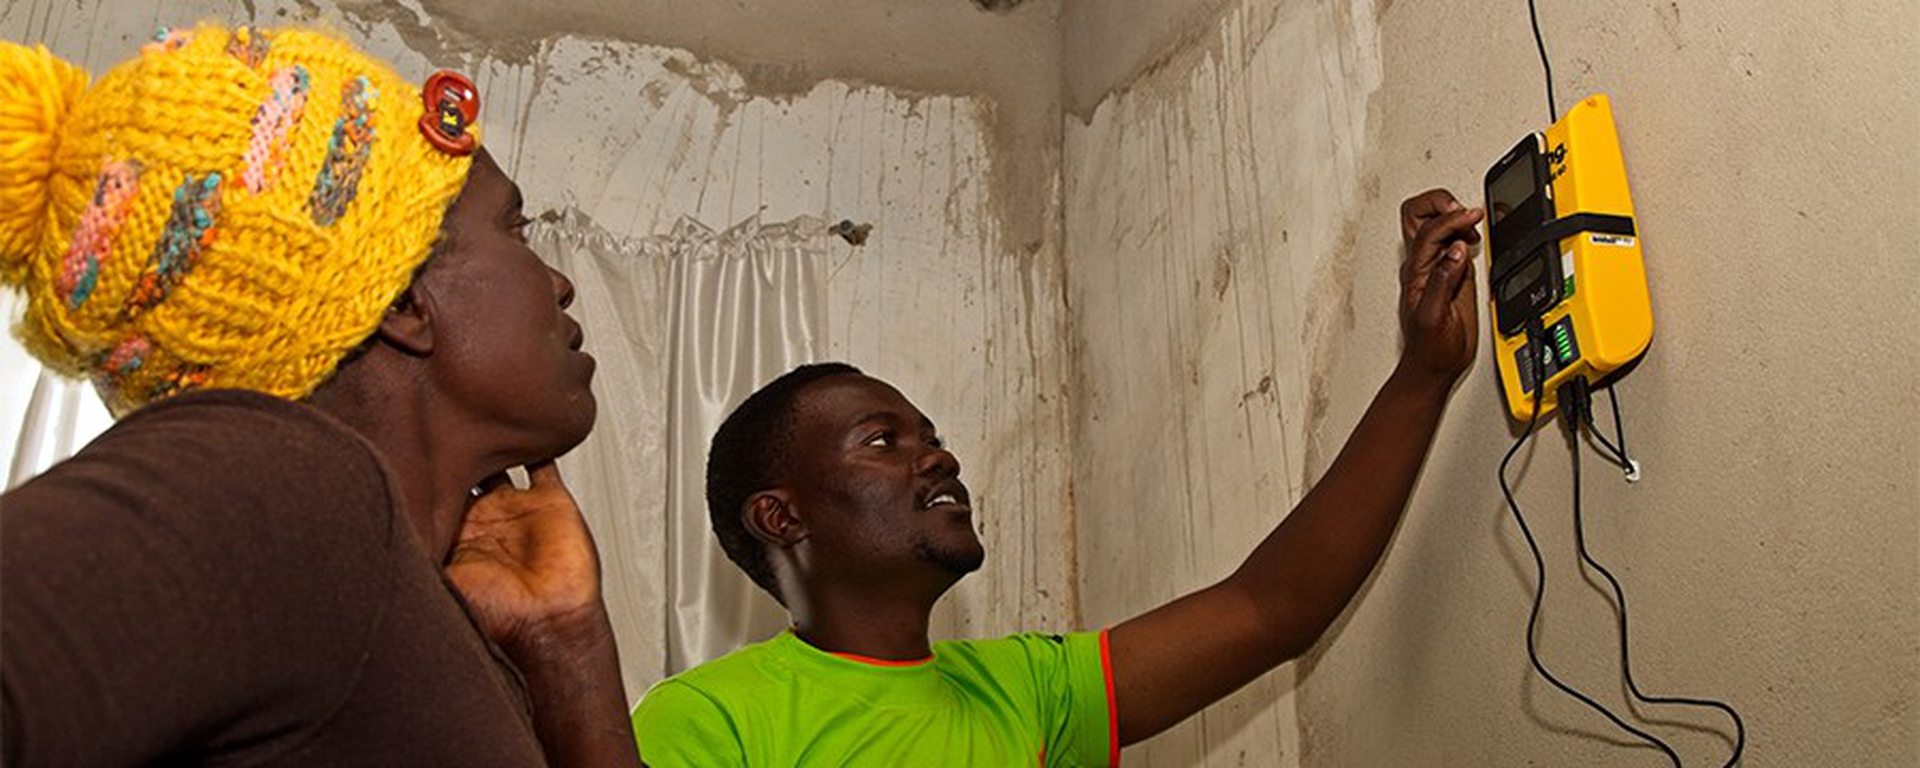 GSMA - GSMA Innovation Fund For Digital Urban Services Movemeback African initiative cover image